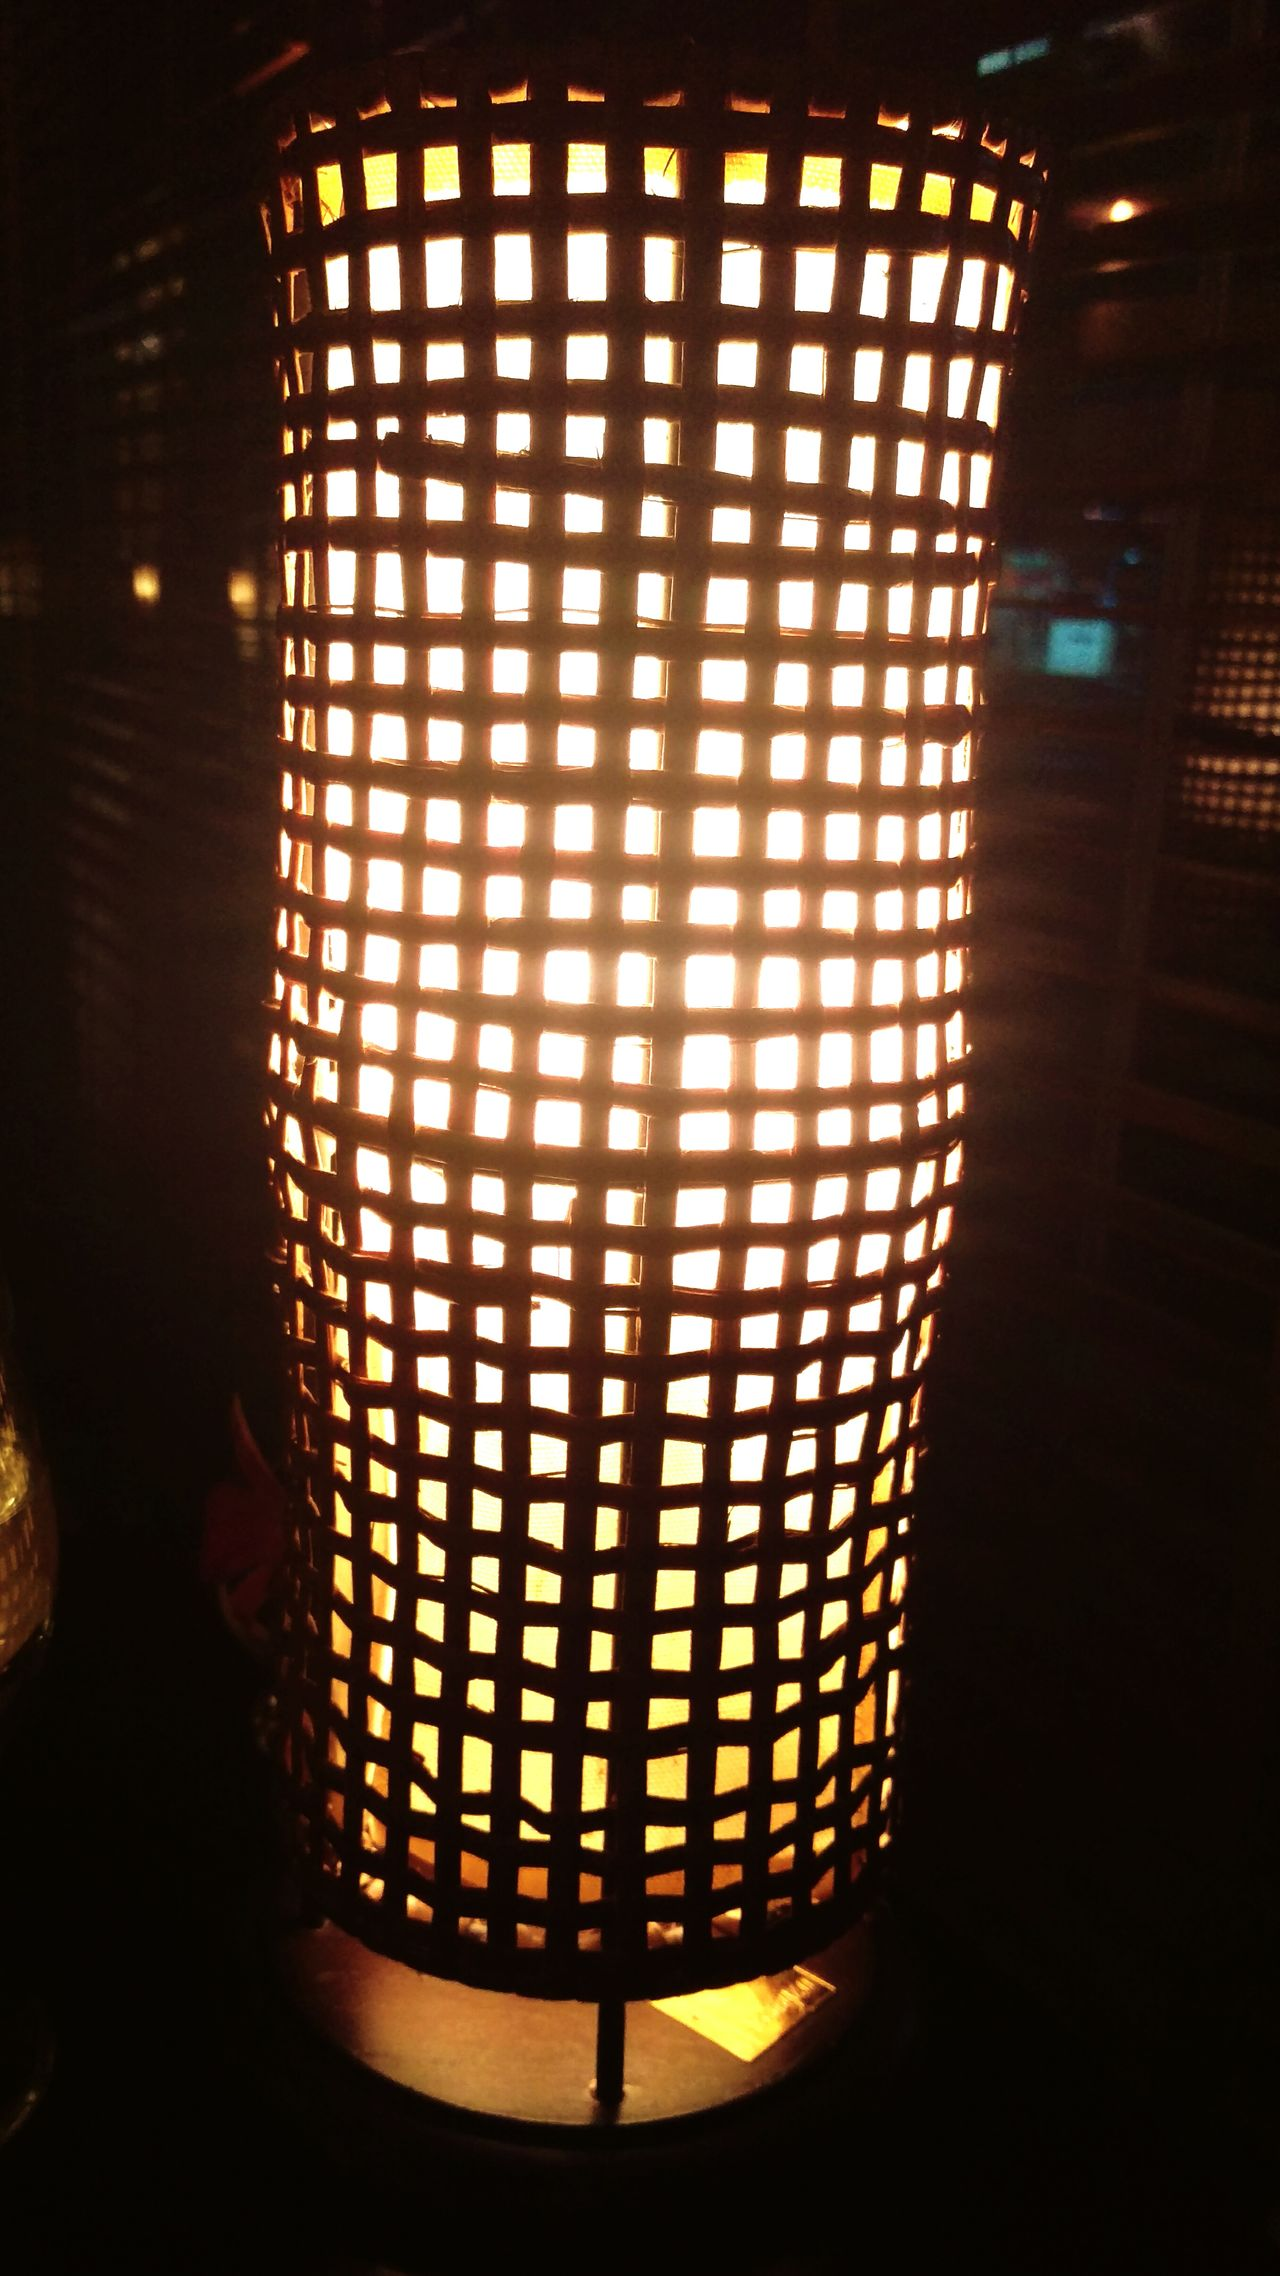 Light And Shadow Light Up Your Life Light And Dark Restaurant Dinner Date Hanging Out Enjoying Life Fun! Art And Craft